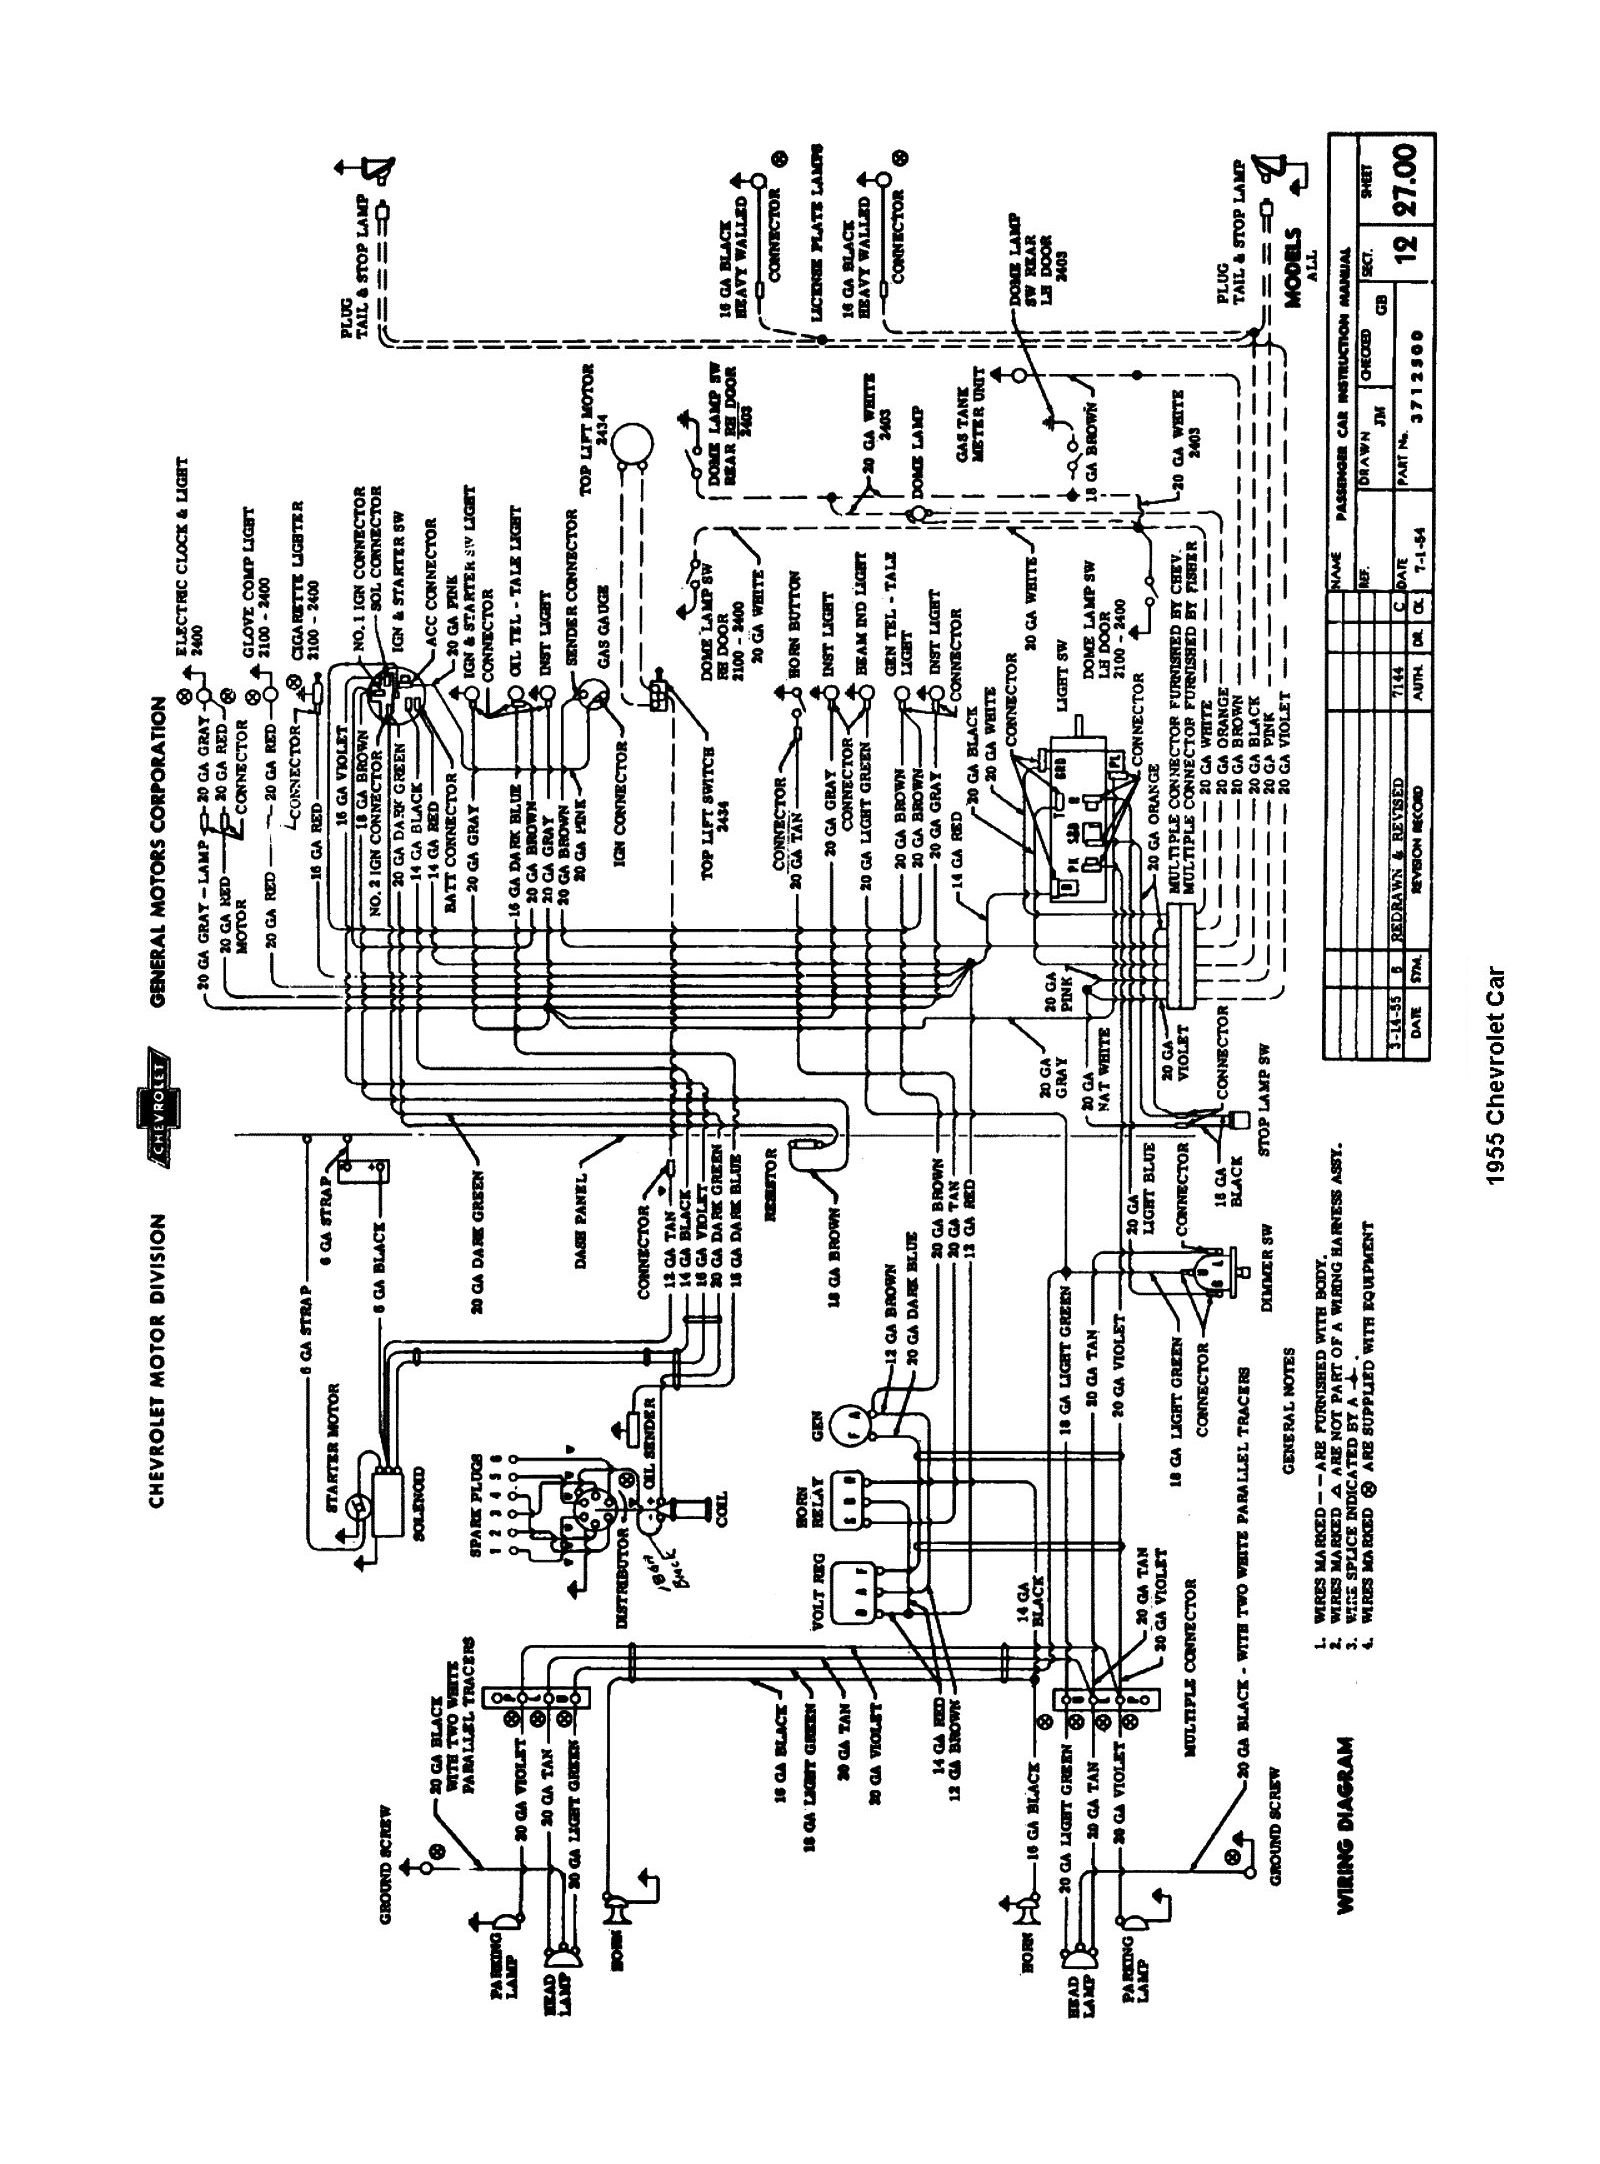 1951 oldsmobile wiring diagram